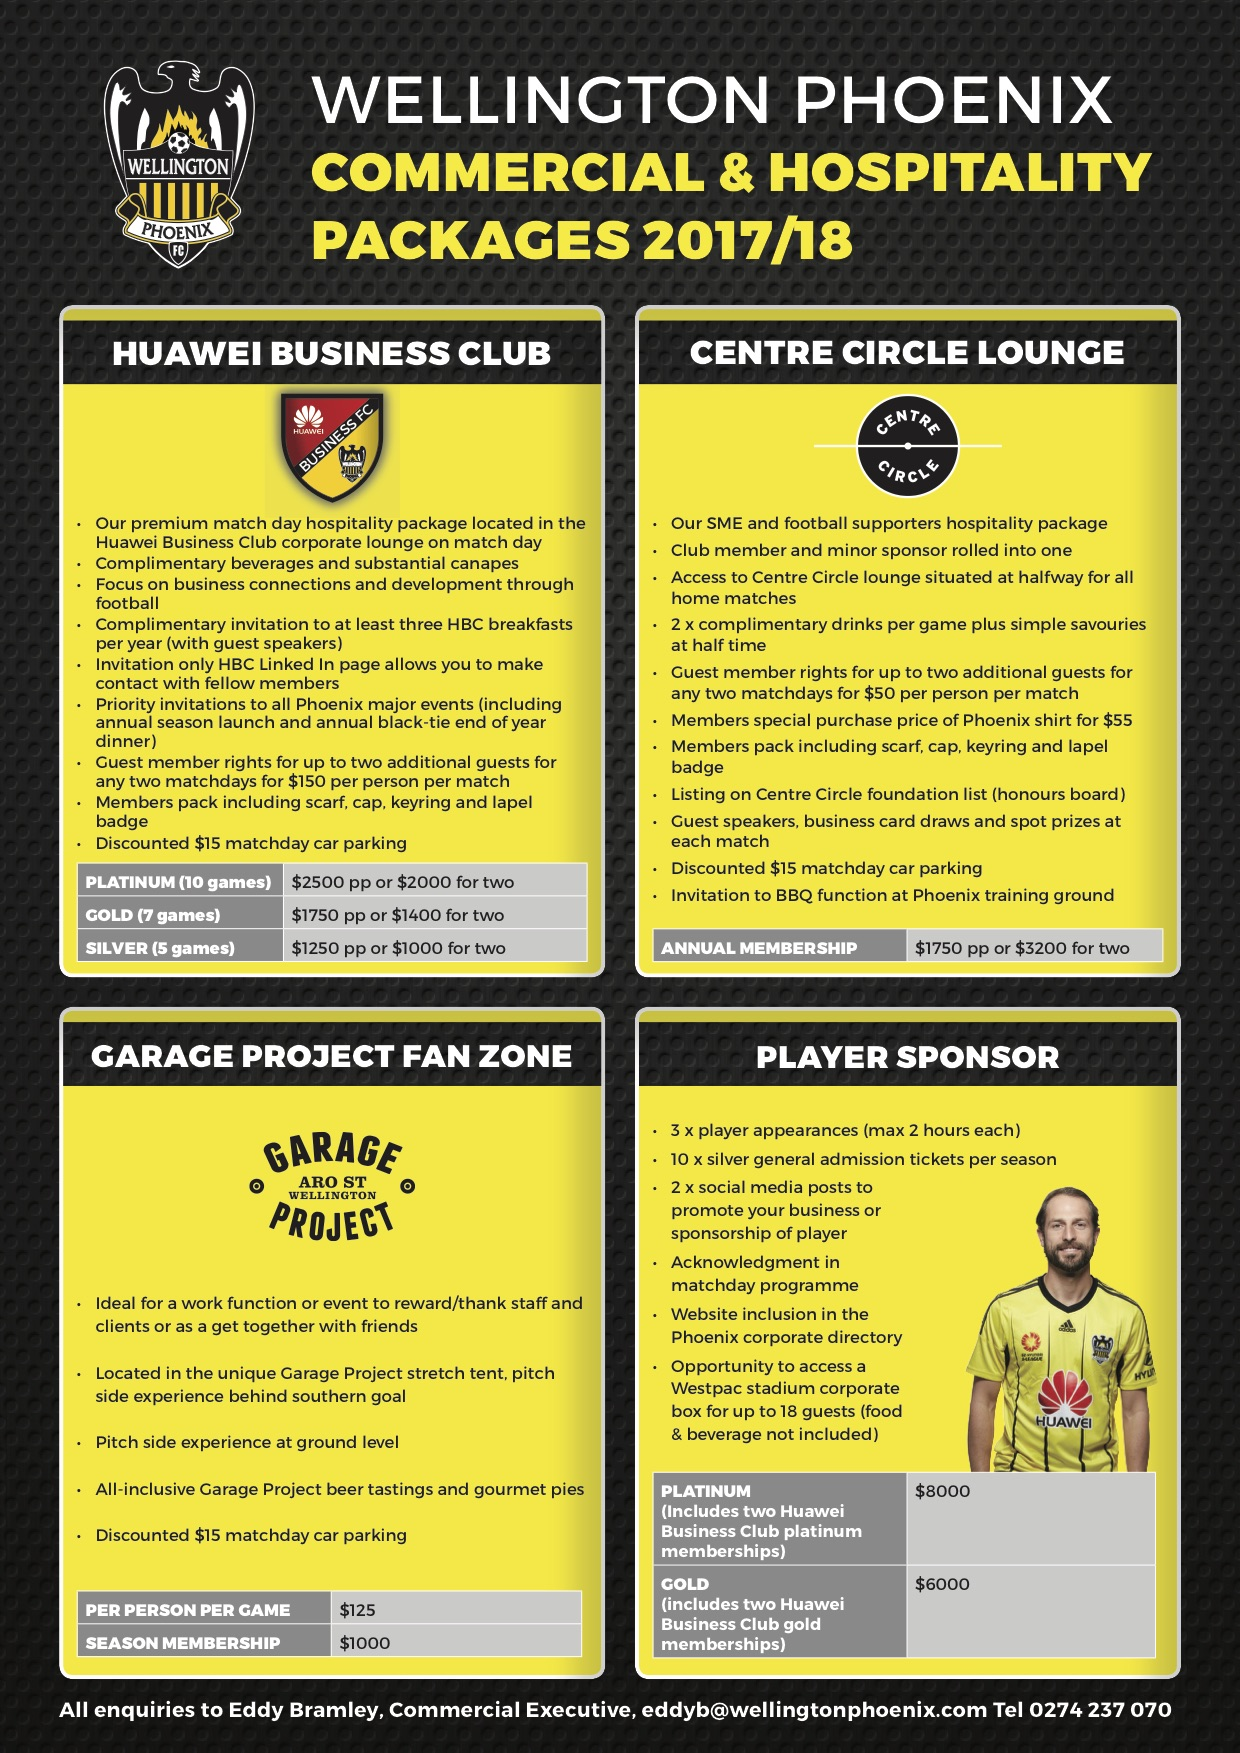 Wellington Phoenix are proud to announce their 2017/18 season corporate hospitality packages.